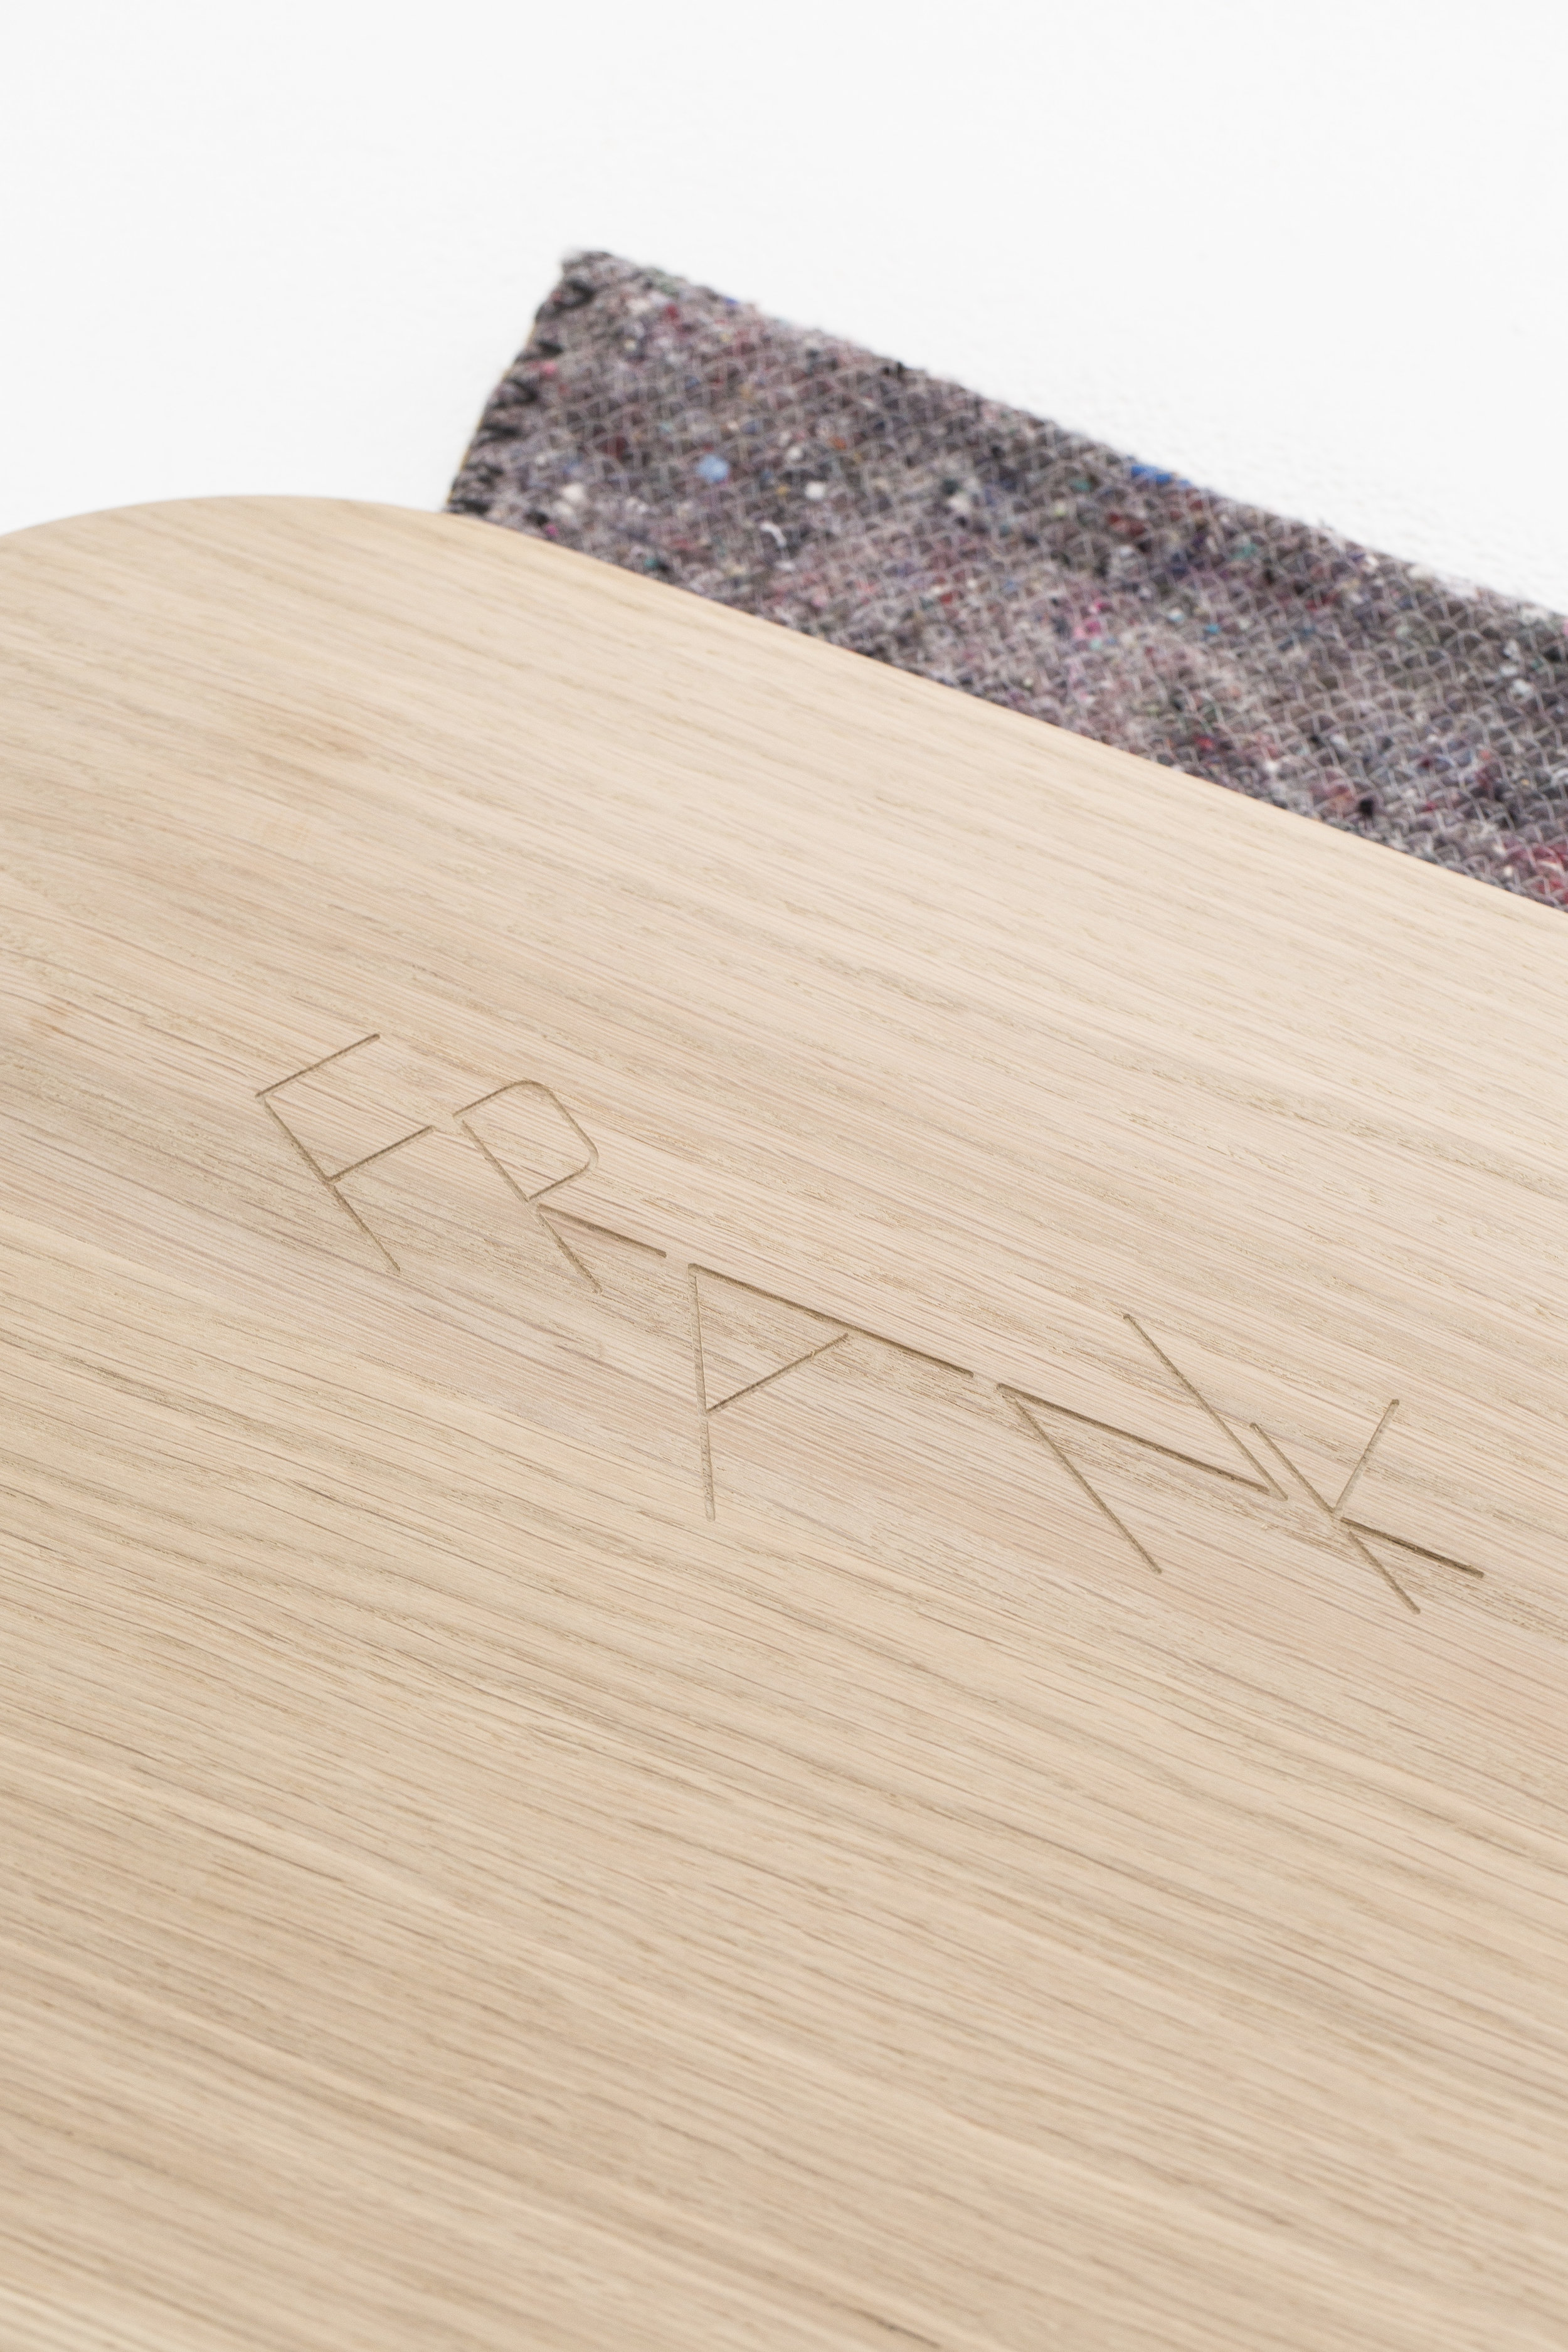 frank-london-collection-table-21-february-2018-0069.jpg